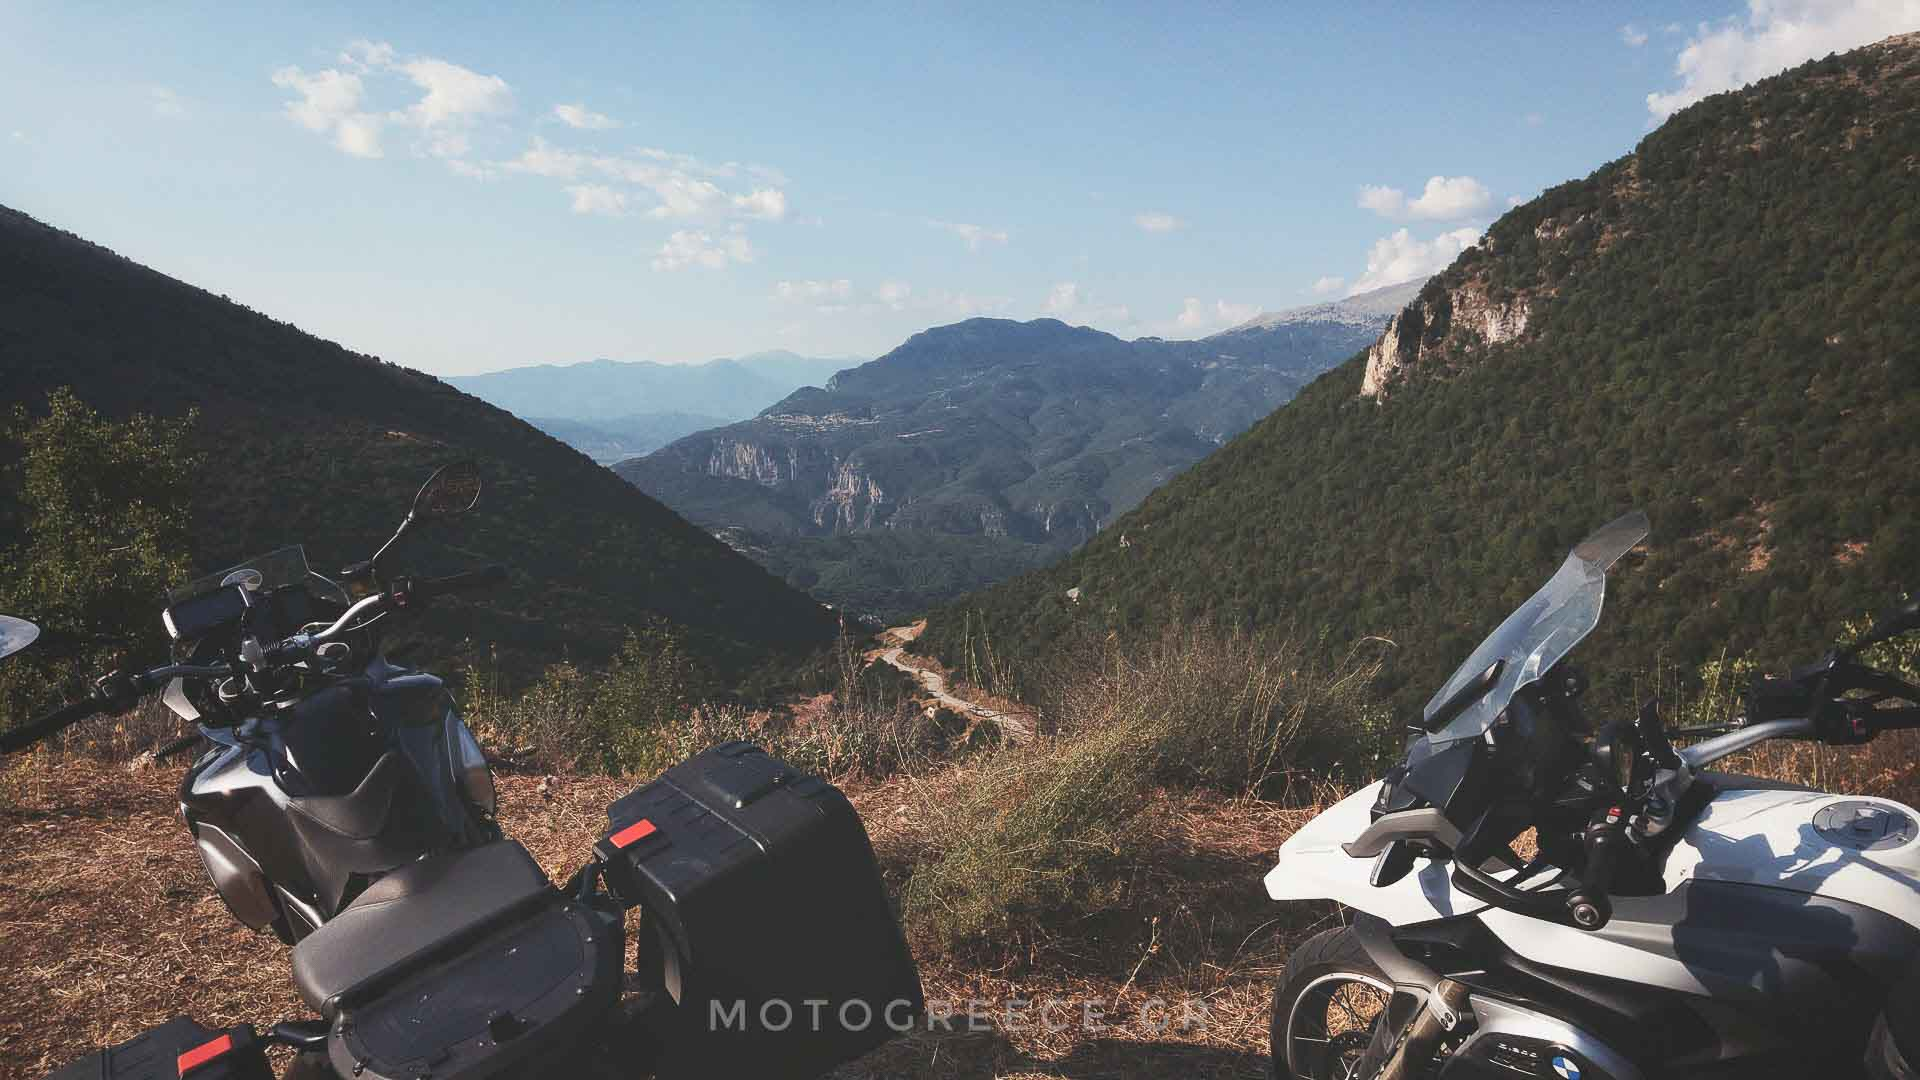 Self guided motorcycle tours in Greece